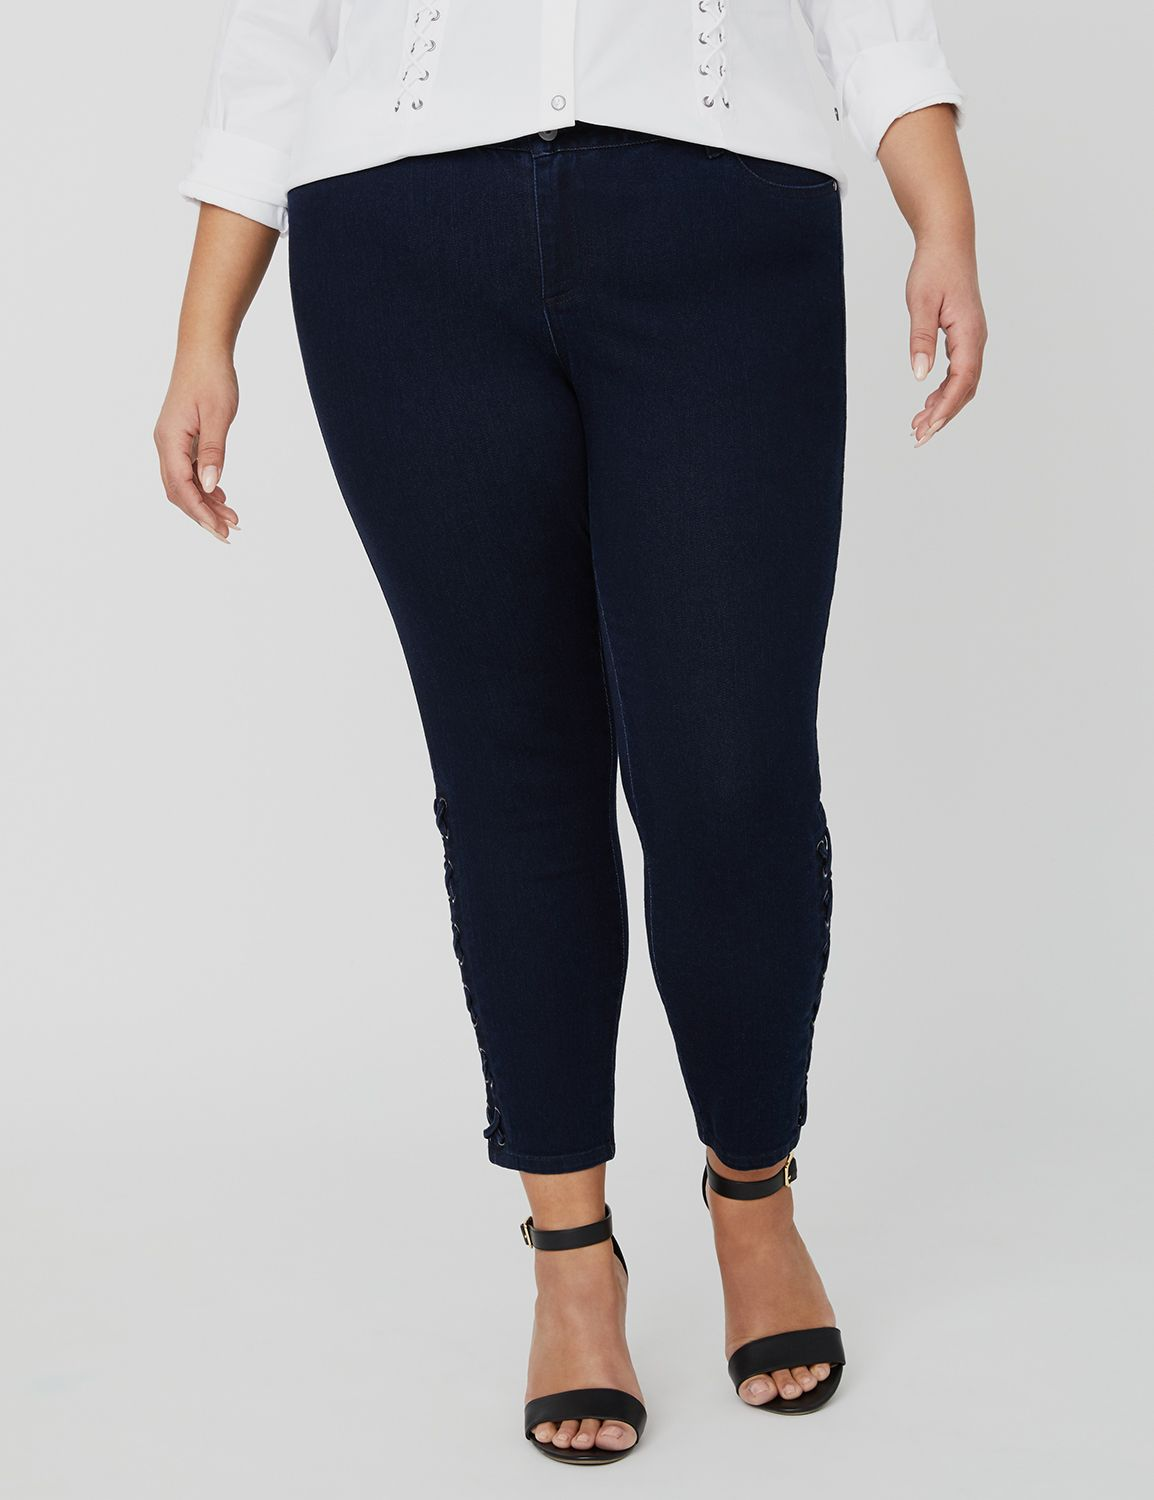 Curvy Collection Lace-Up Jean 1088607 Curvy Collection Sateen (11 MP-300099593